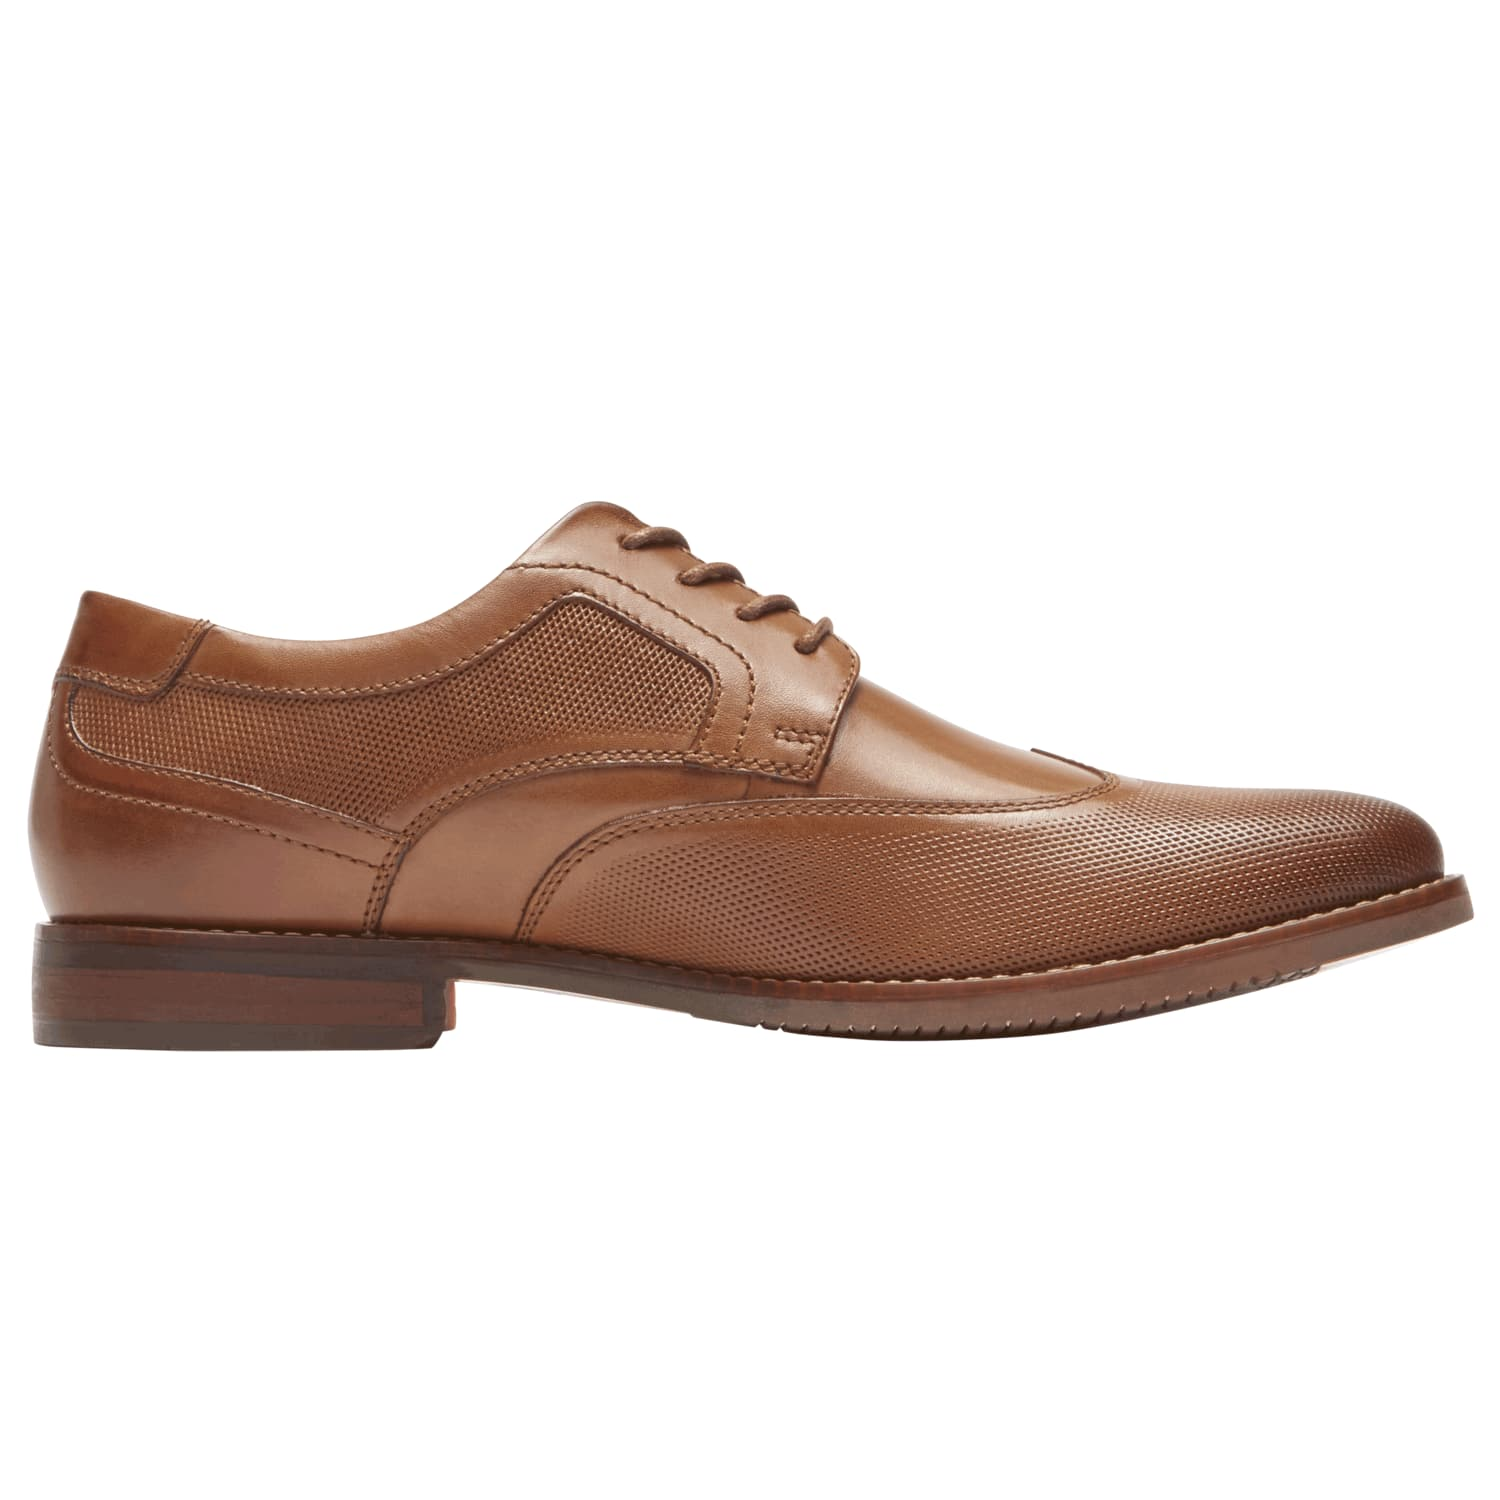 Rockport: Extra 40% Off Men's and Women's Dress Shoes + Free Shipping